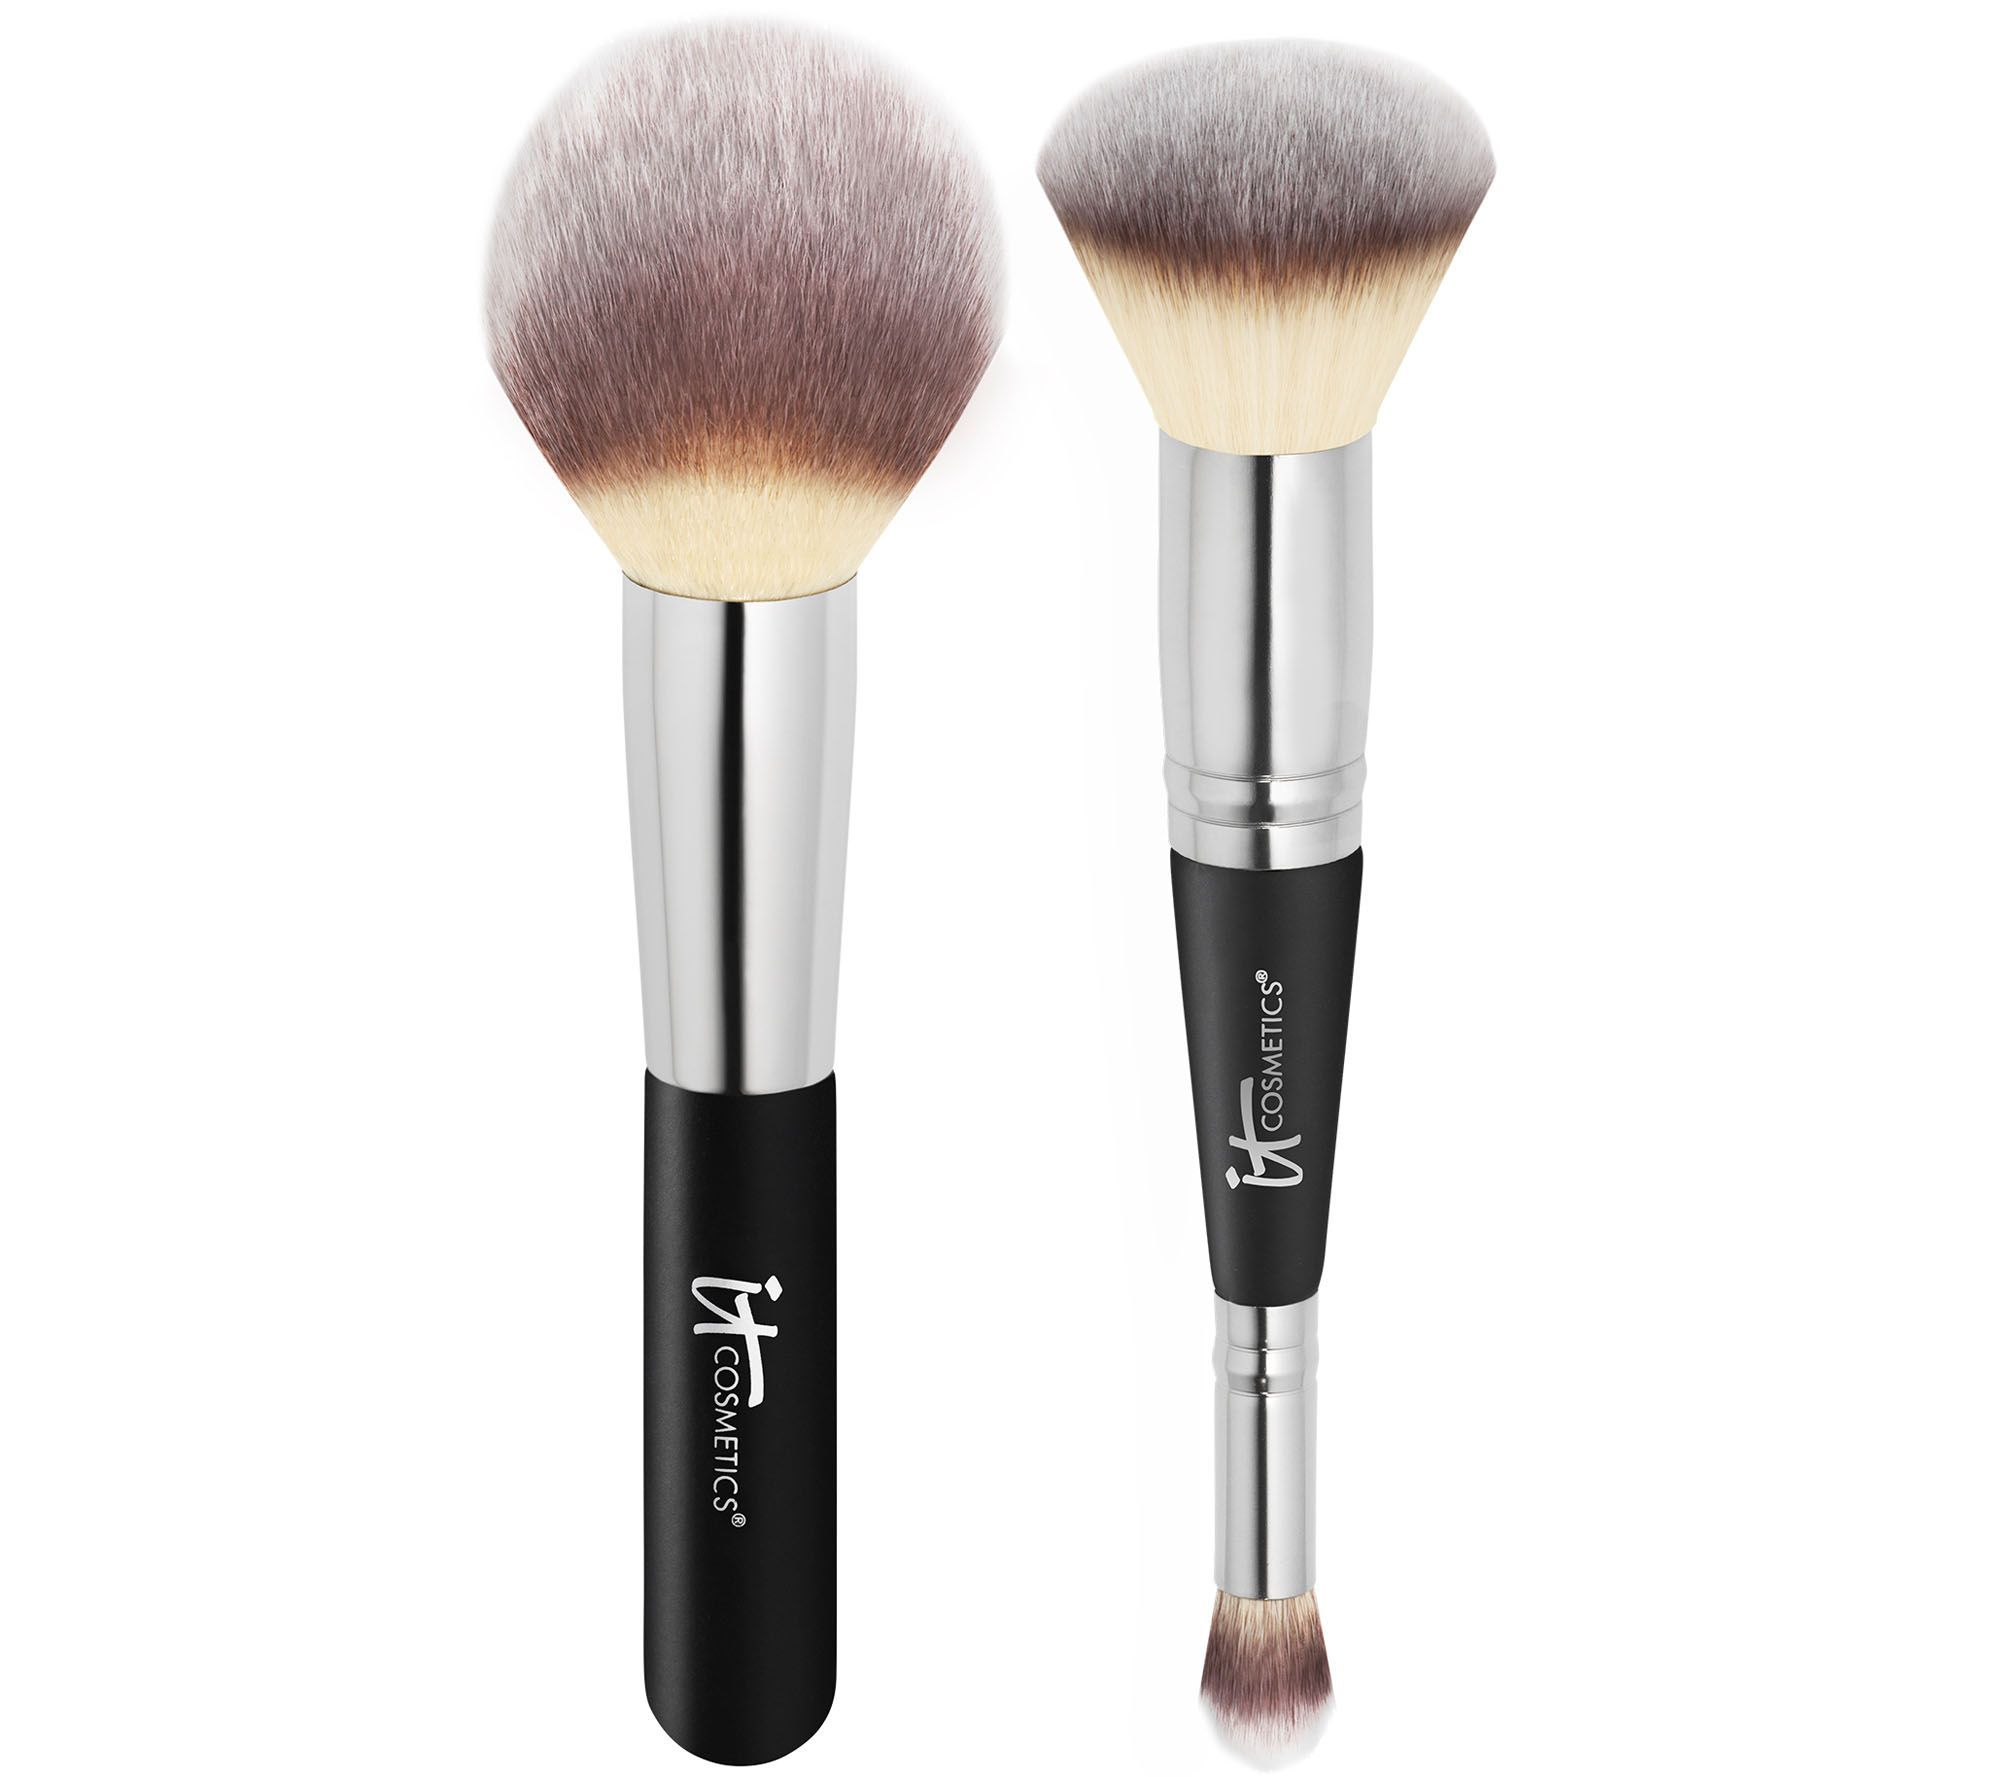 IT Cosmetics Heavenly Luxe Complexion Perfection Brush Duo